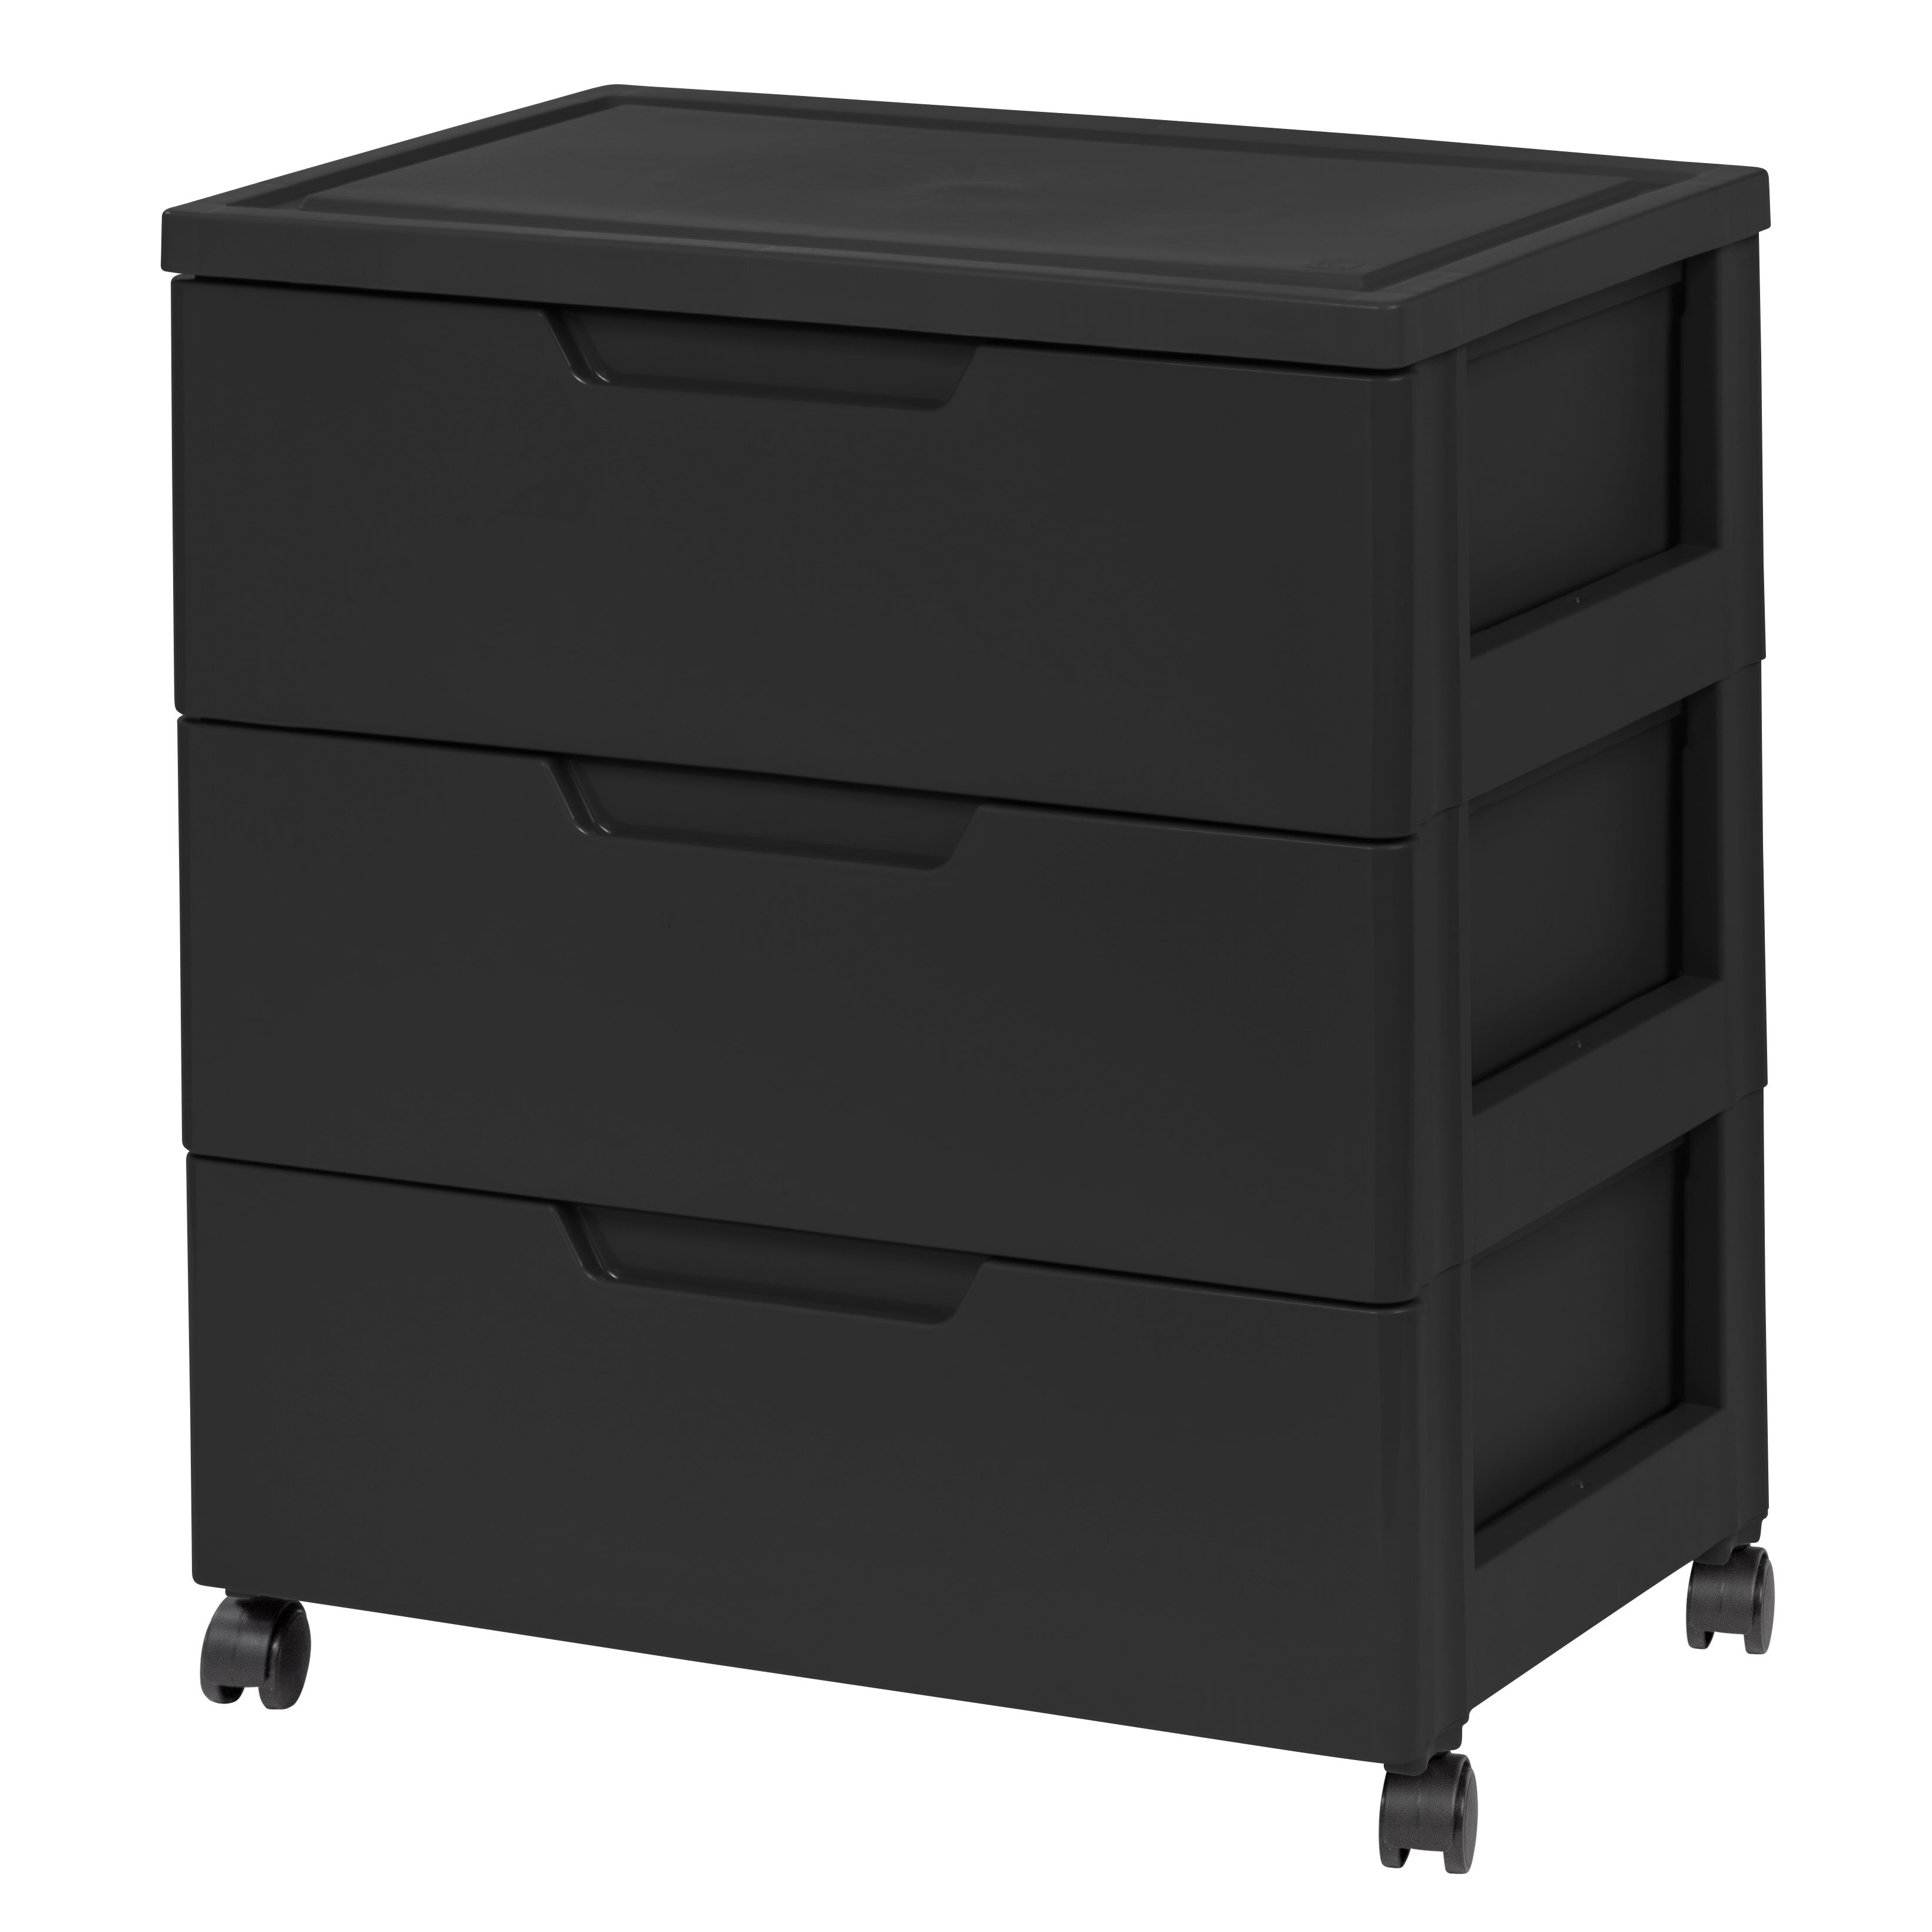 Iris 3 Drawer Storage Chest & Reviews  Wayfair. Outdoor Refrigerator Drawers. 4 Space Rack Drawer. Best Coffee Table Books Ever. Texas Star Drawer Pulls. Parsons Coffee Table. Dresser With Drawers And Cupboards. Drawer Fresheners. Small Bedroom Drawers